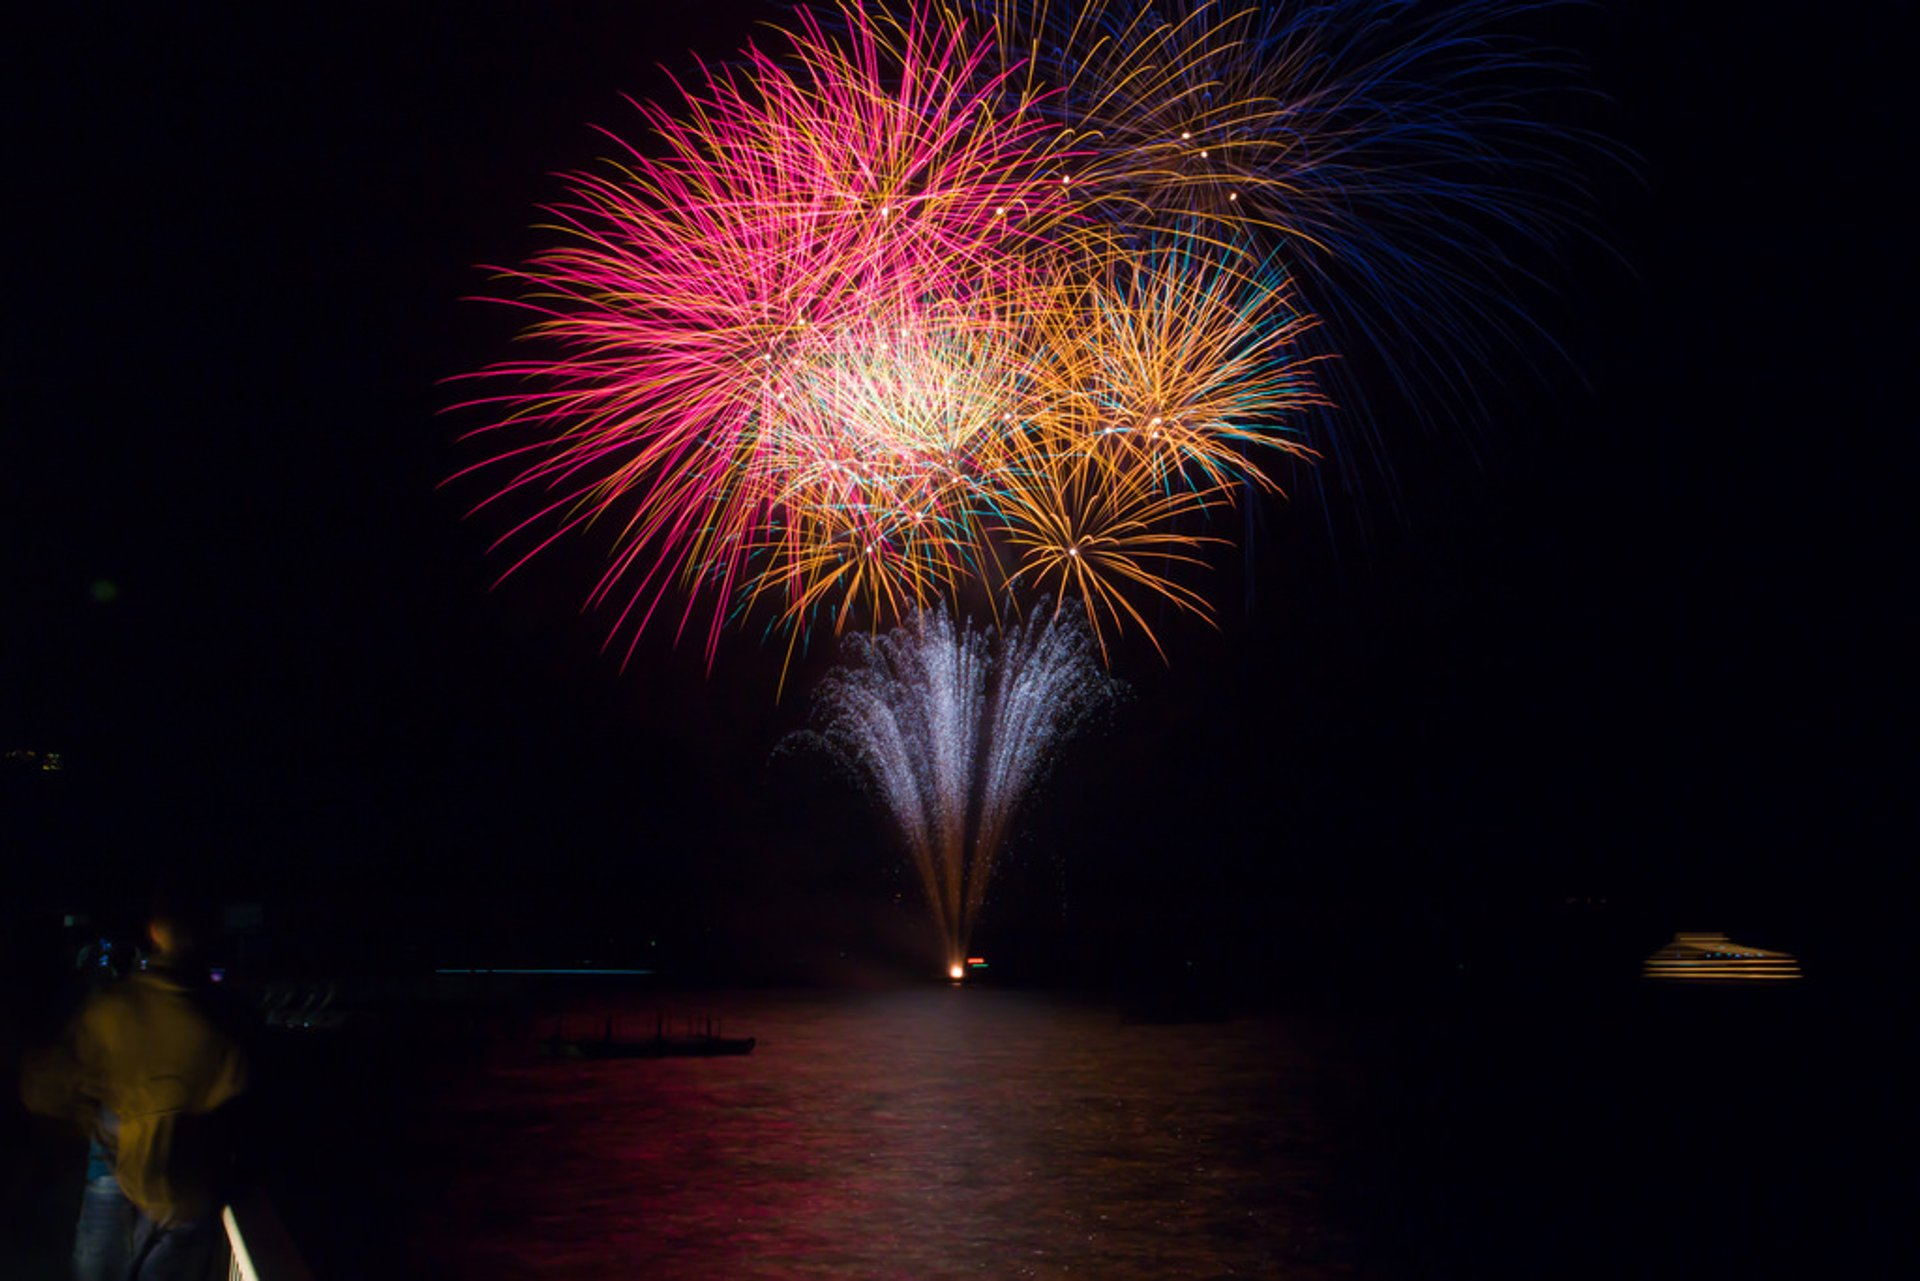 Fireworks on Lake Toyako in Japan - Best Season 2019